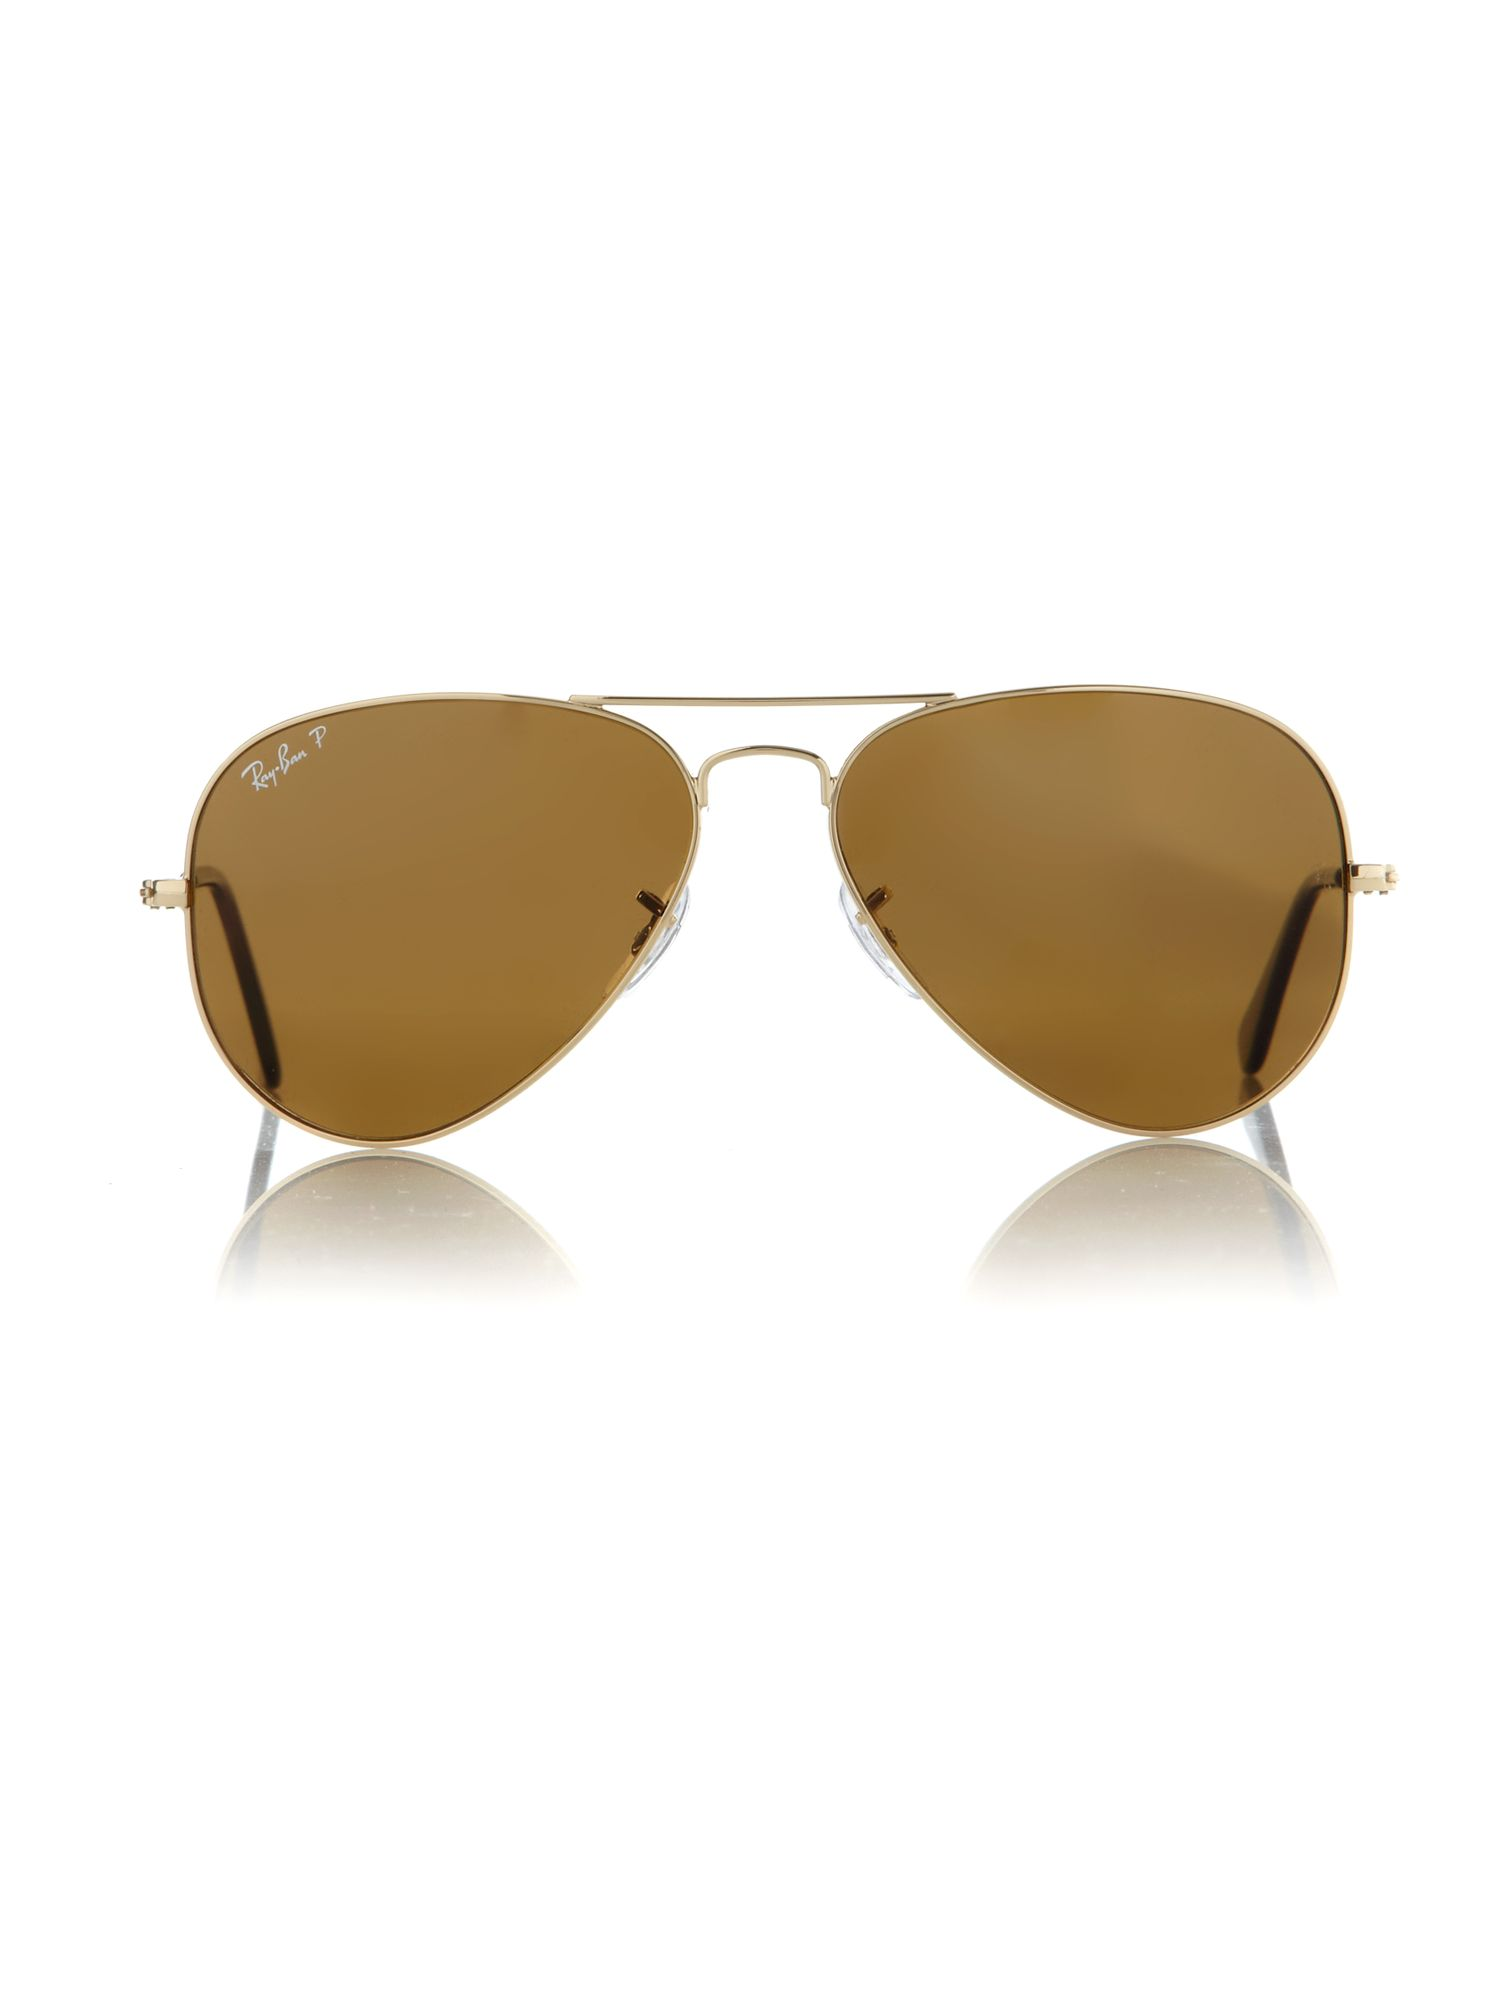 Unisex RB3025 58 Arista Aviator Sunglasses